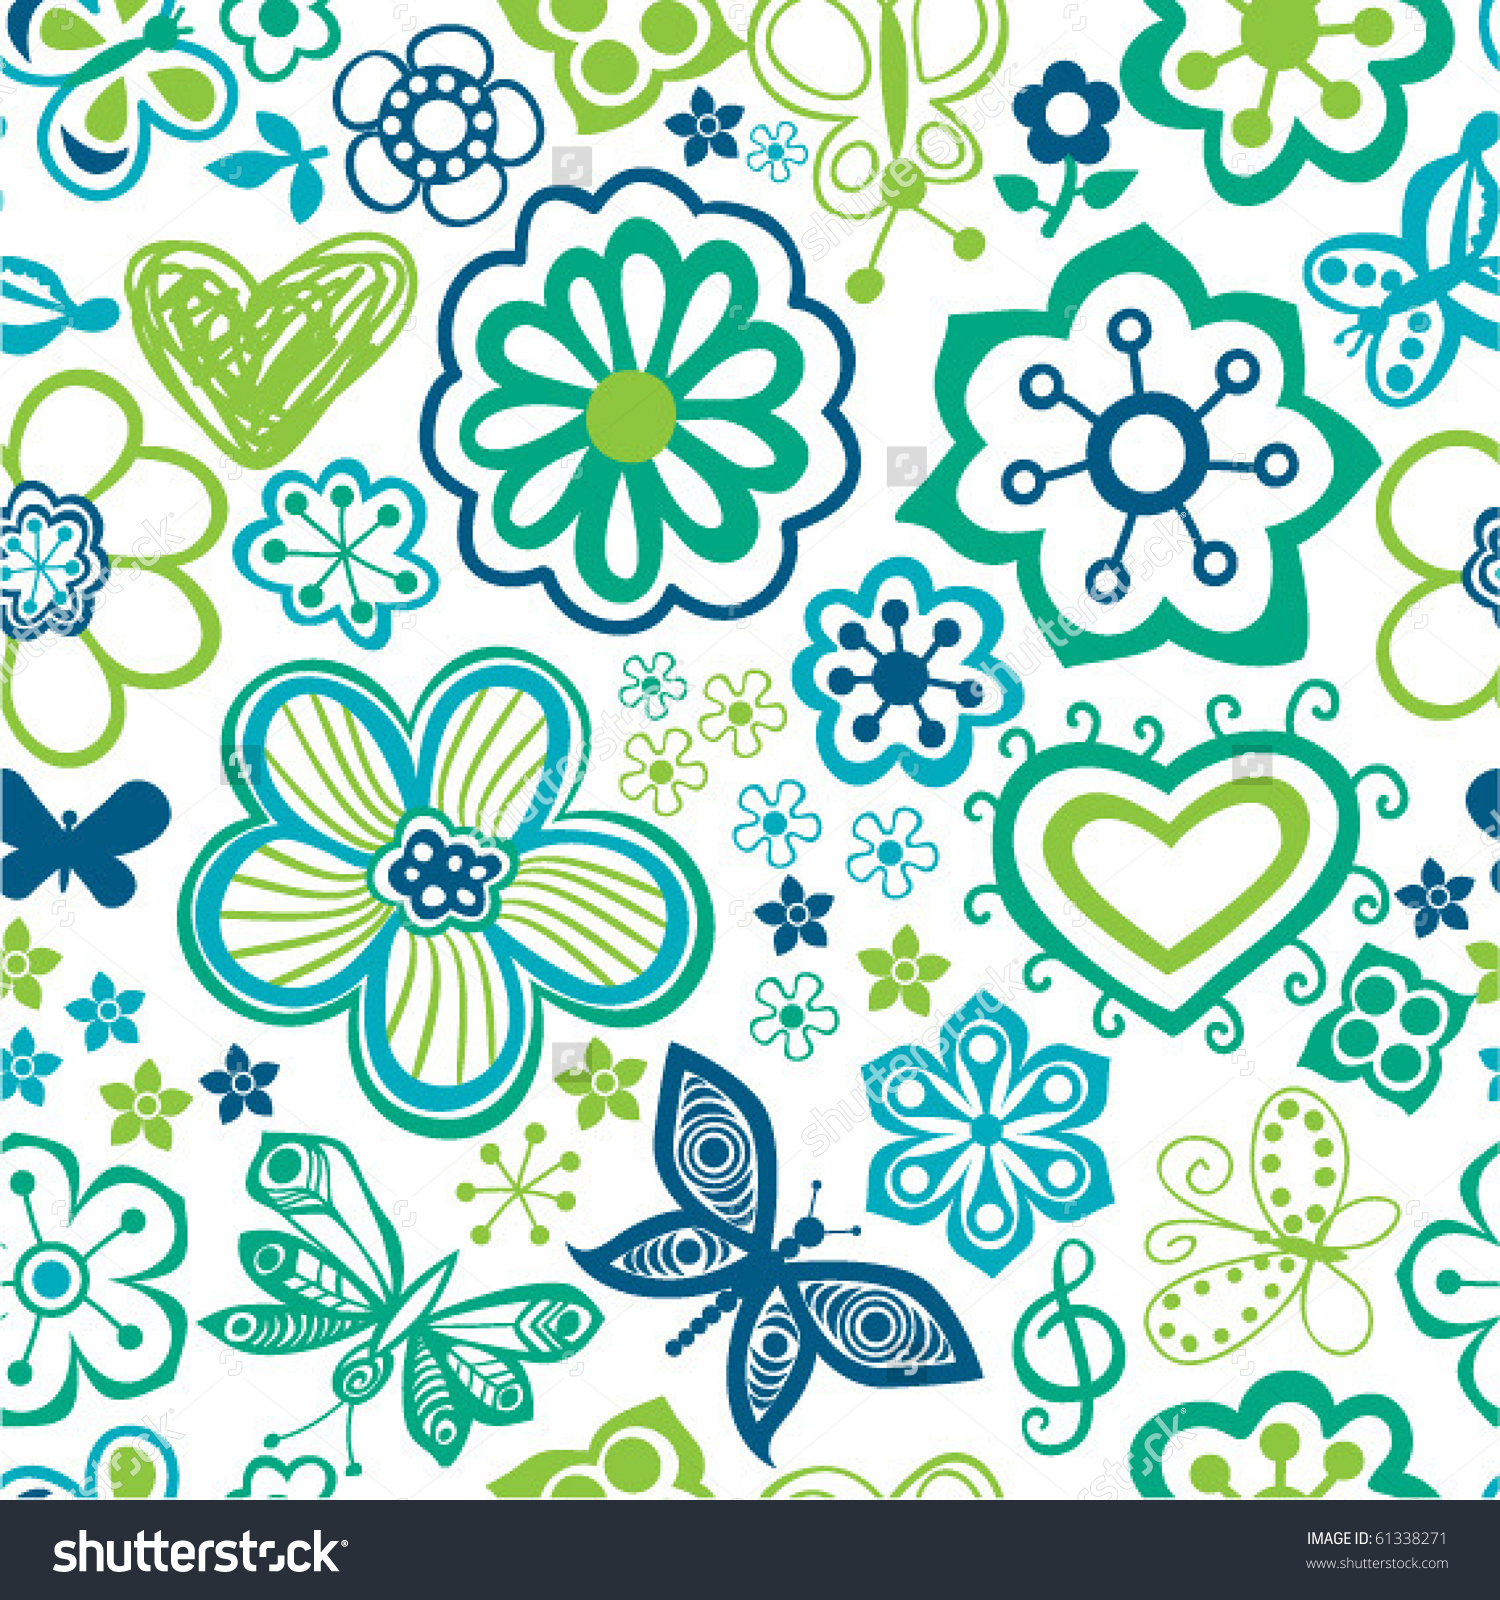 Bright Cartoon Seamless Pattern Flowers Butterflies Stock Vector.